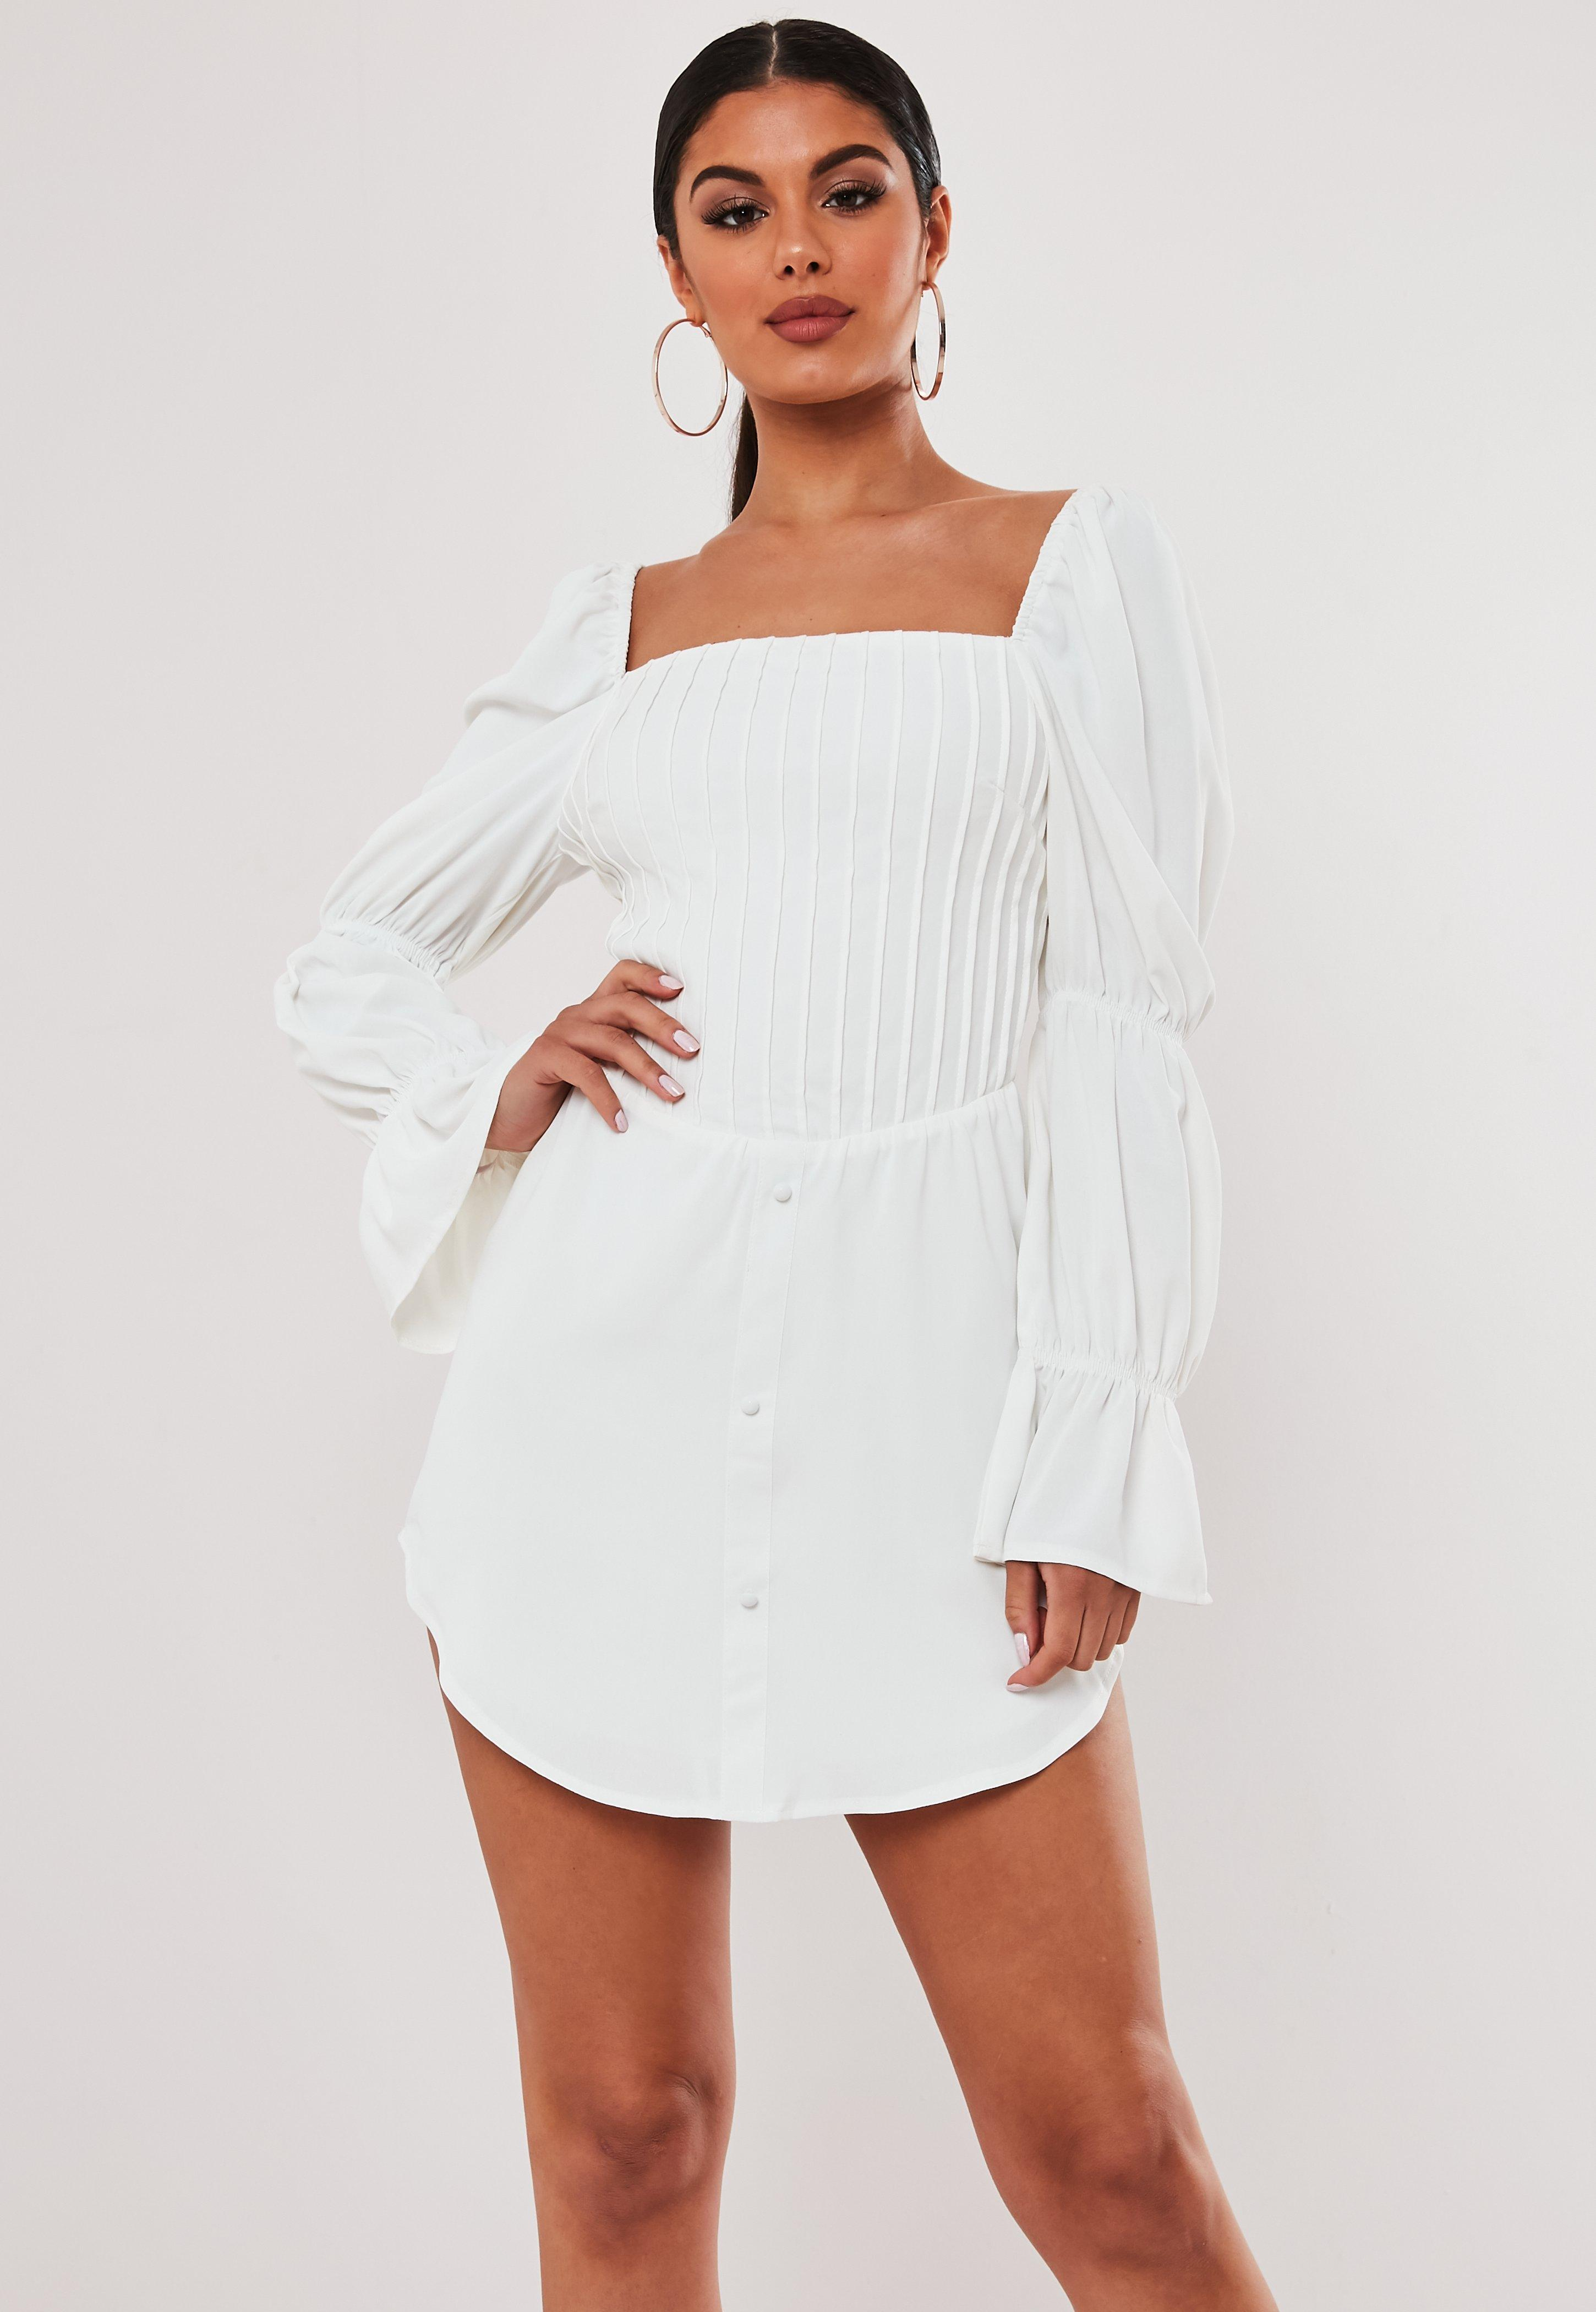 buy popular purchase cheap buy Stassie x Missguided White Corset Bodice Milkmaid Dress   Missguided